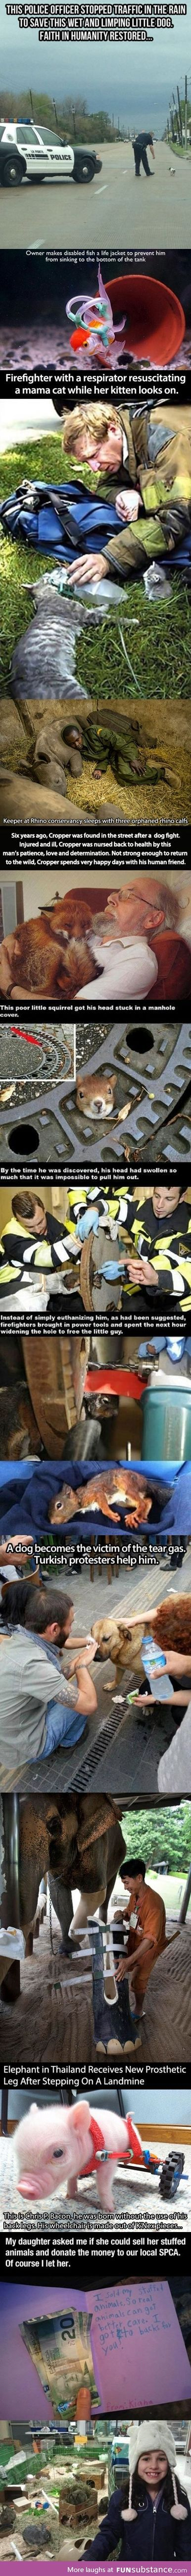 People Helping Animals